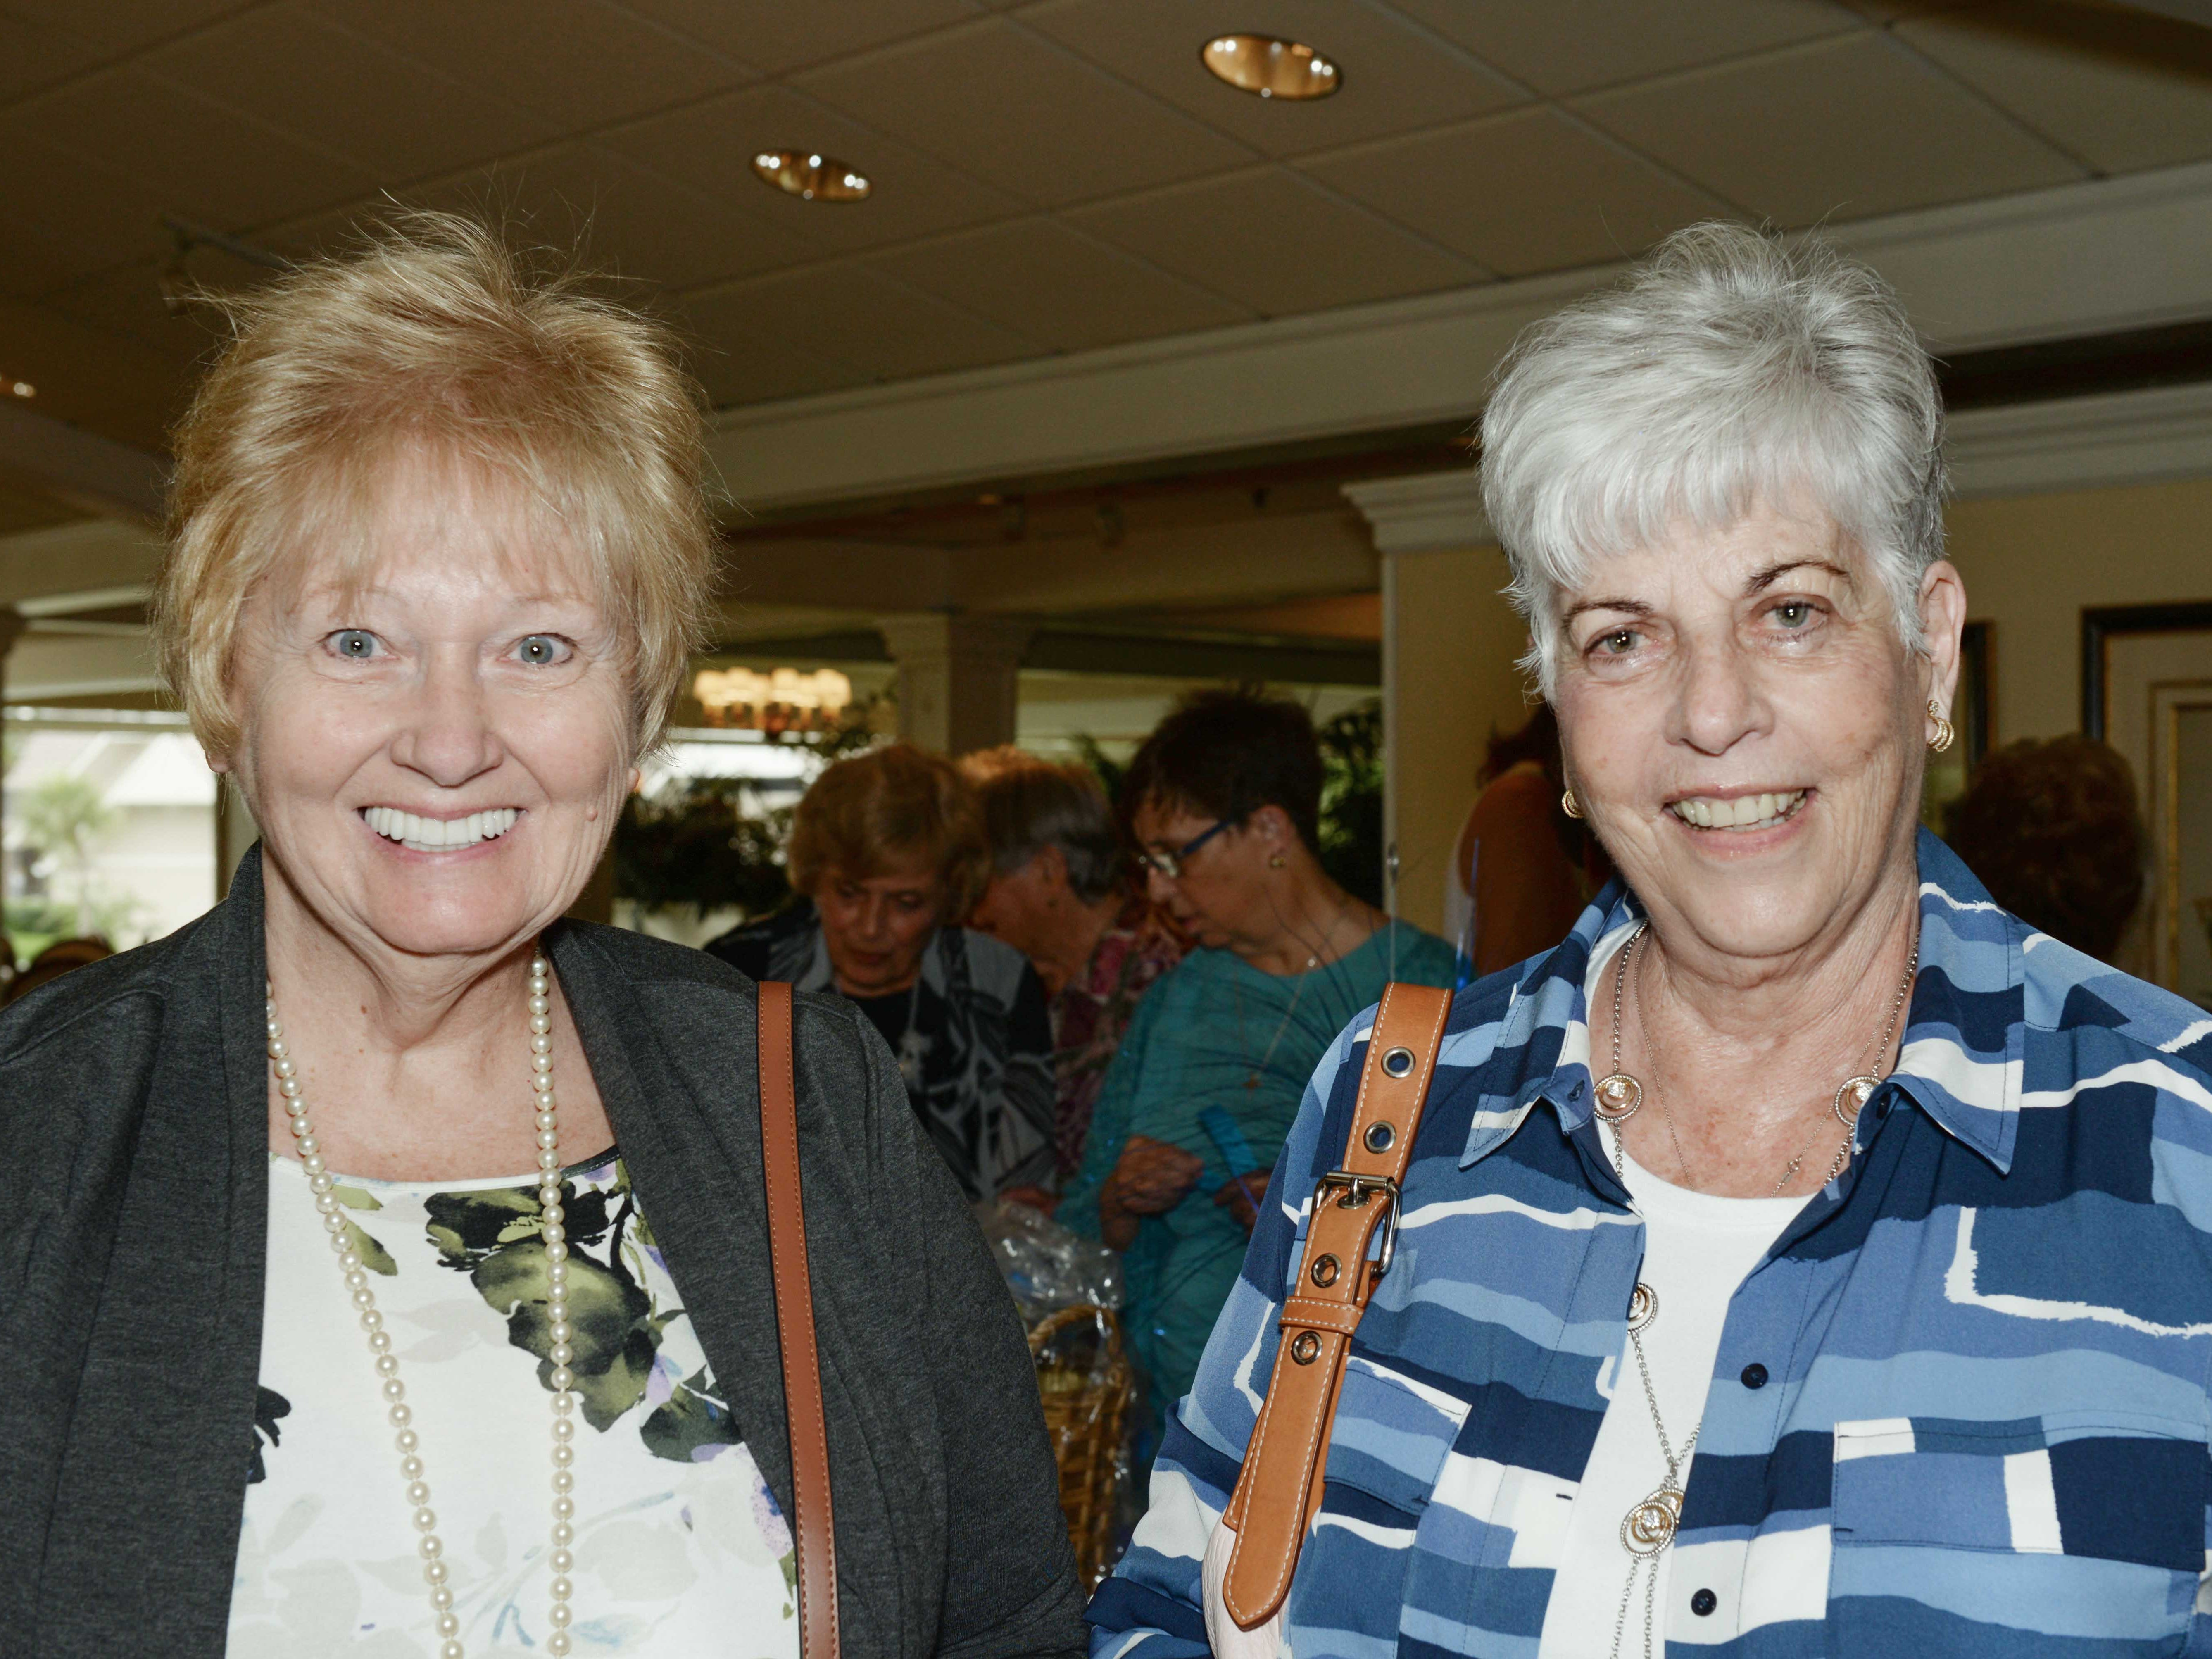 Karen Doster, left, and Sigrid Doster at the Sapphire Anniversary luncheon of the American Association of University Women Stuart Branch at Mariner Sands Country Club.